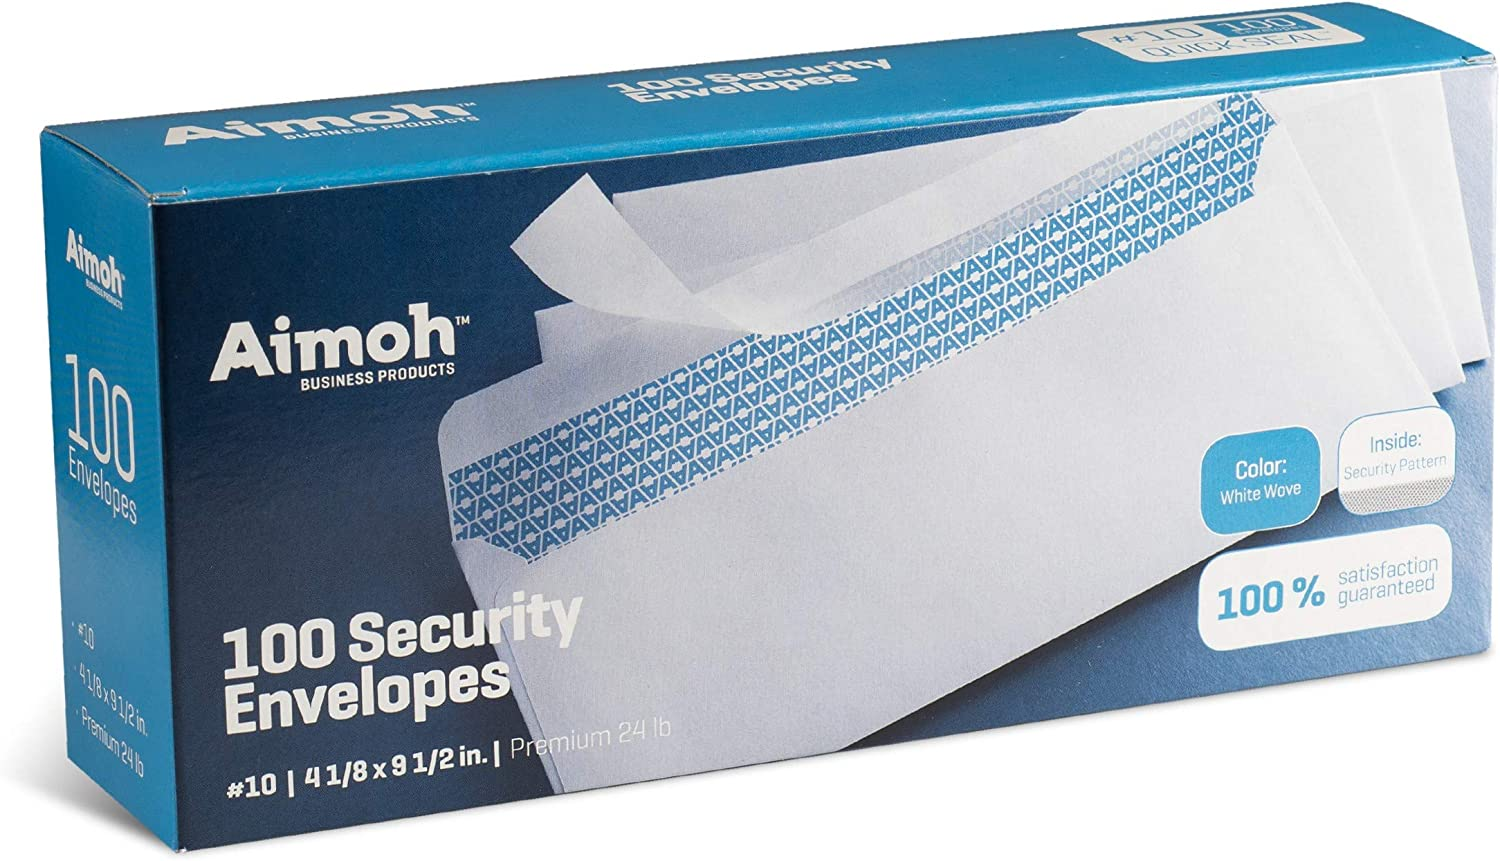 #10 Security Tinted Self-Seal Envelopes - nicht Window - EnveGuard, Size 4-1/8 X 9-1/2 Inches - White - 24 LB - 100 Count (34100)